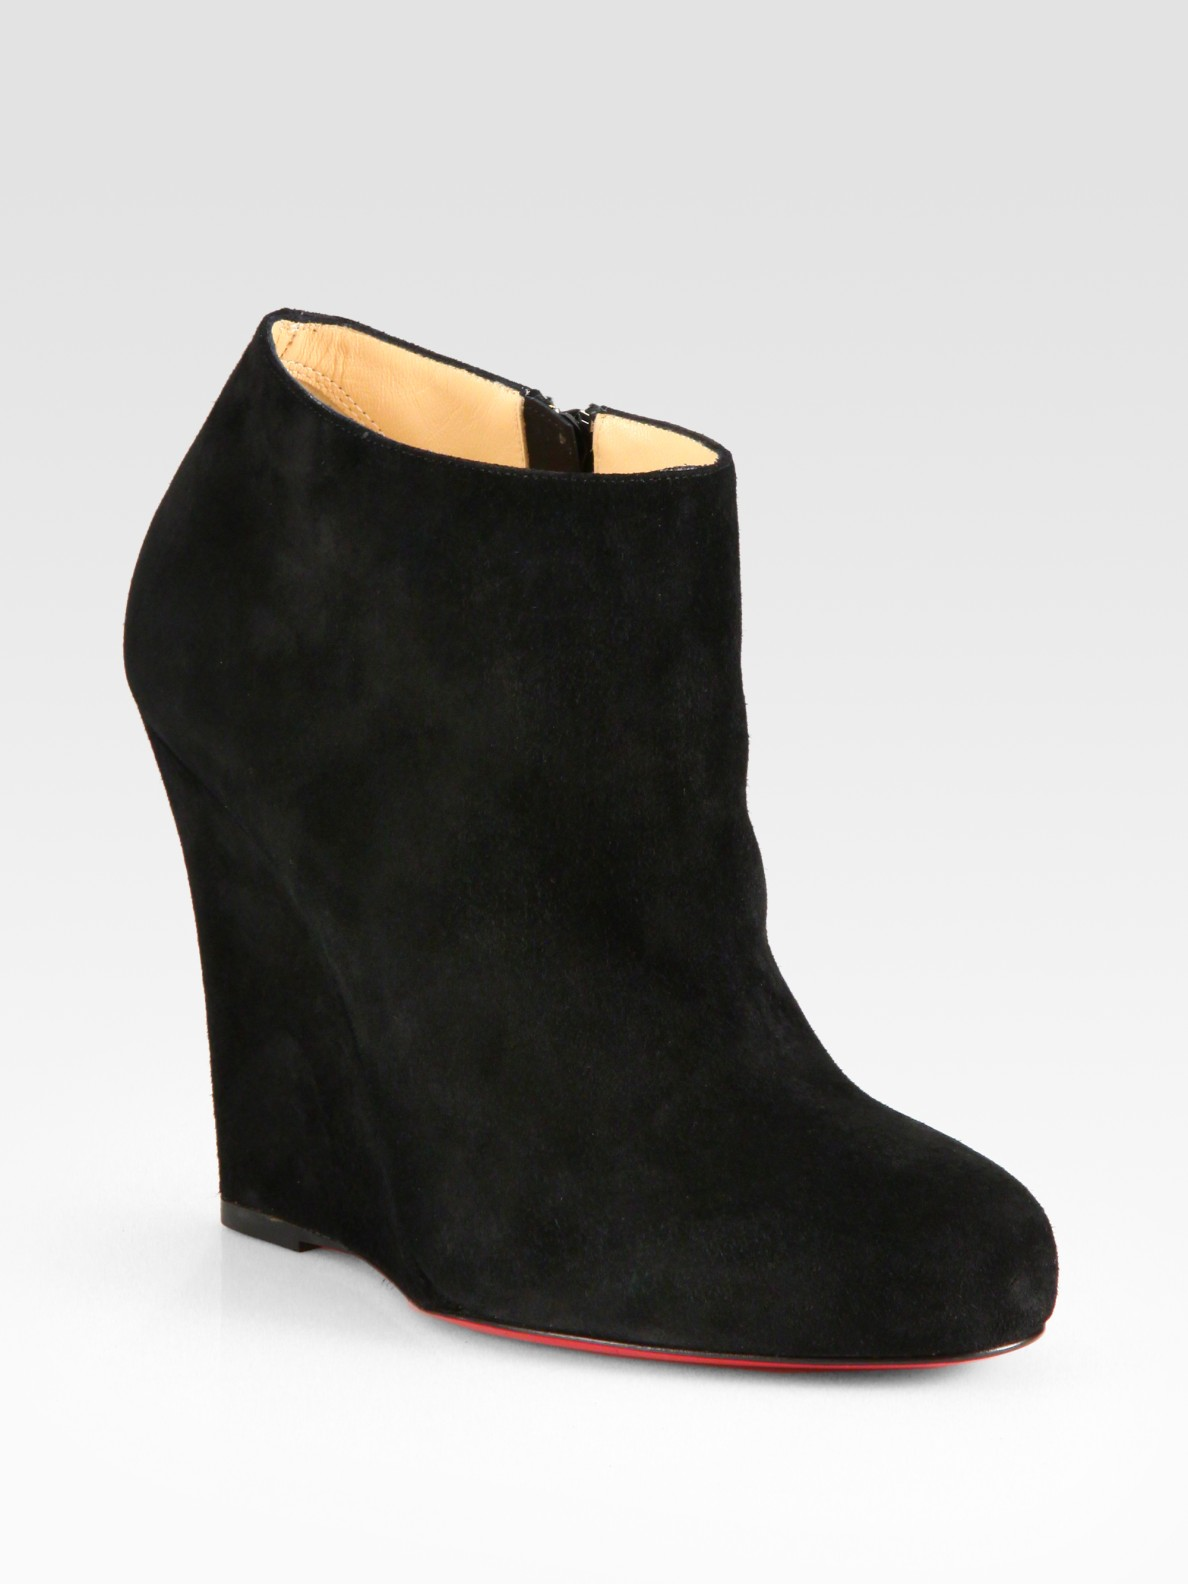 Christian louboutin Suede Wedge Ankle Boots in Black | Lyst